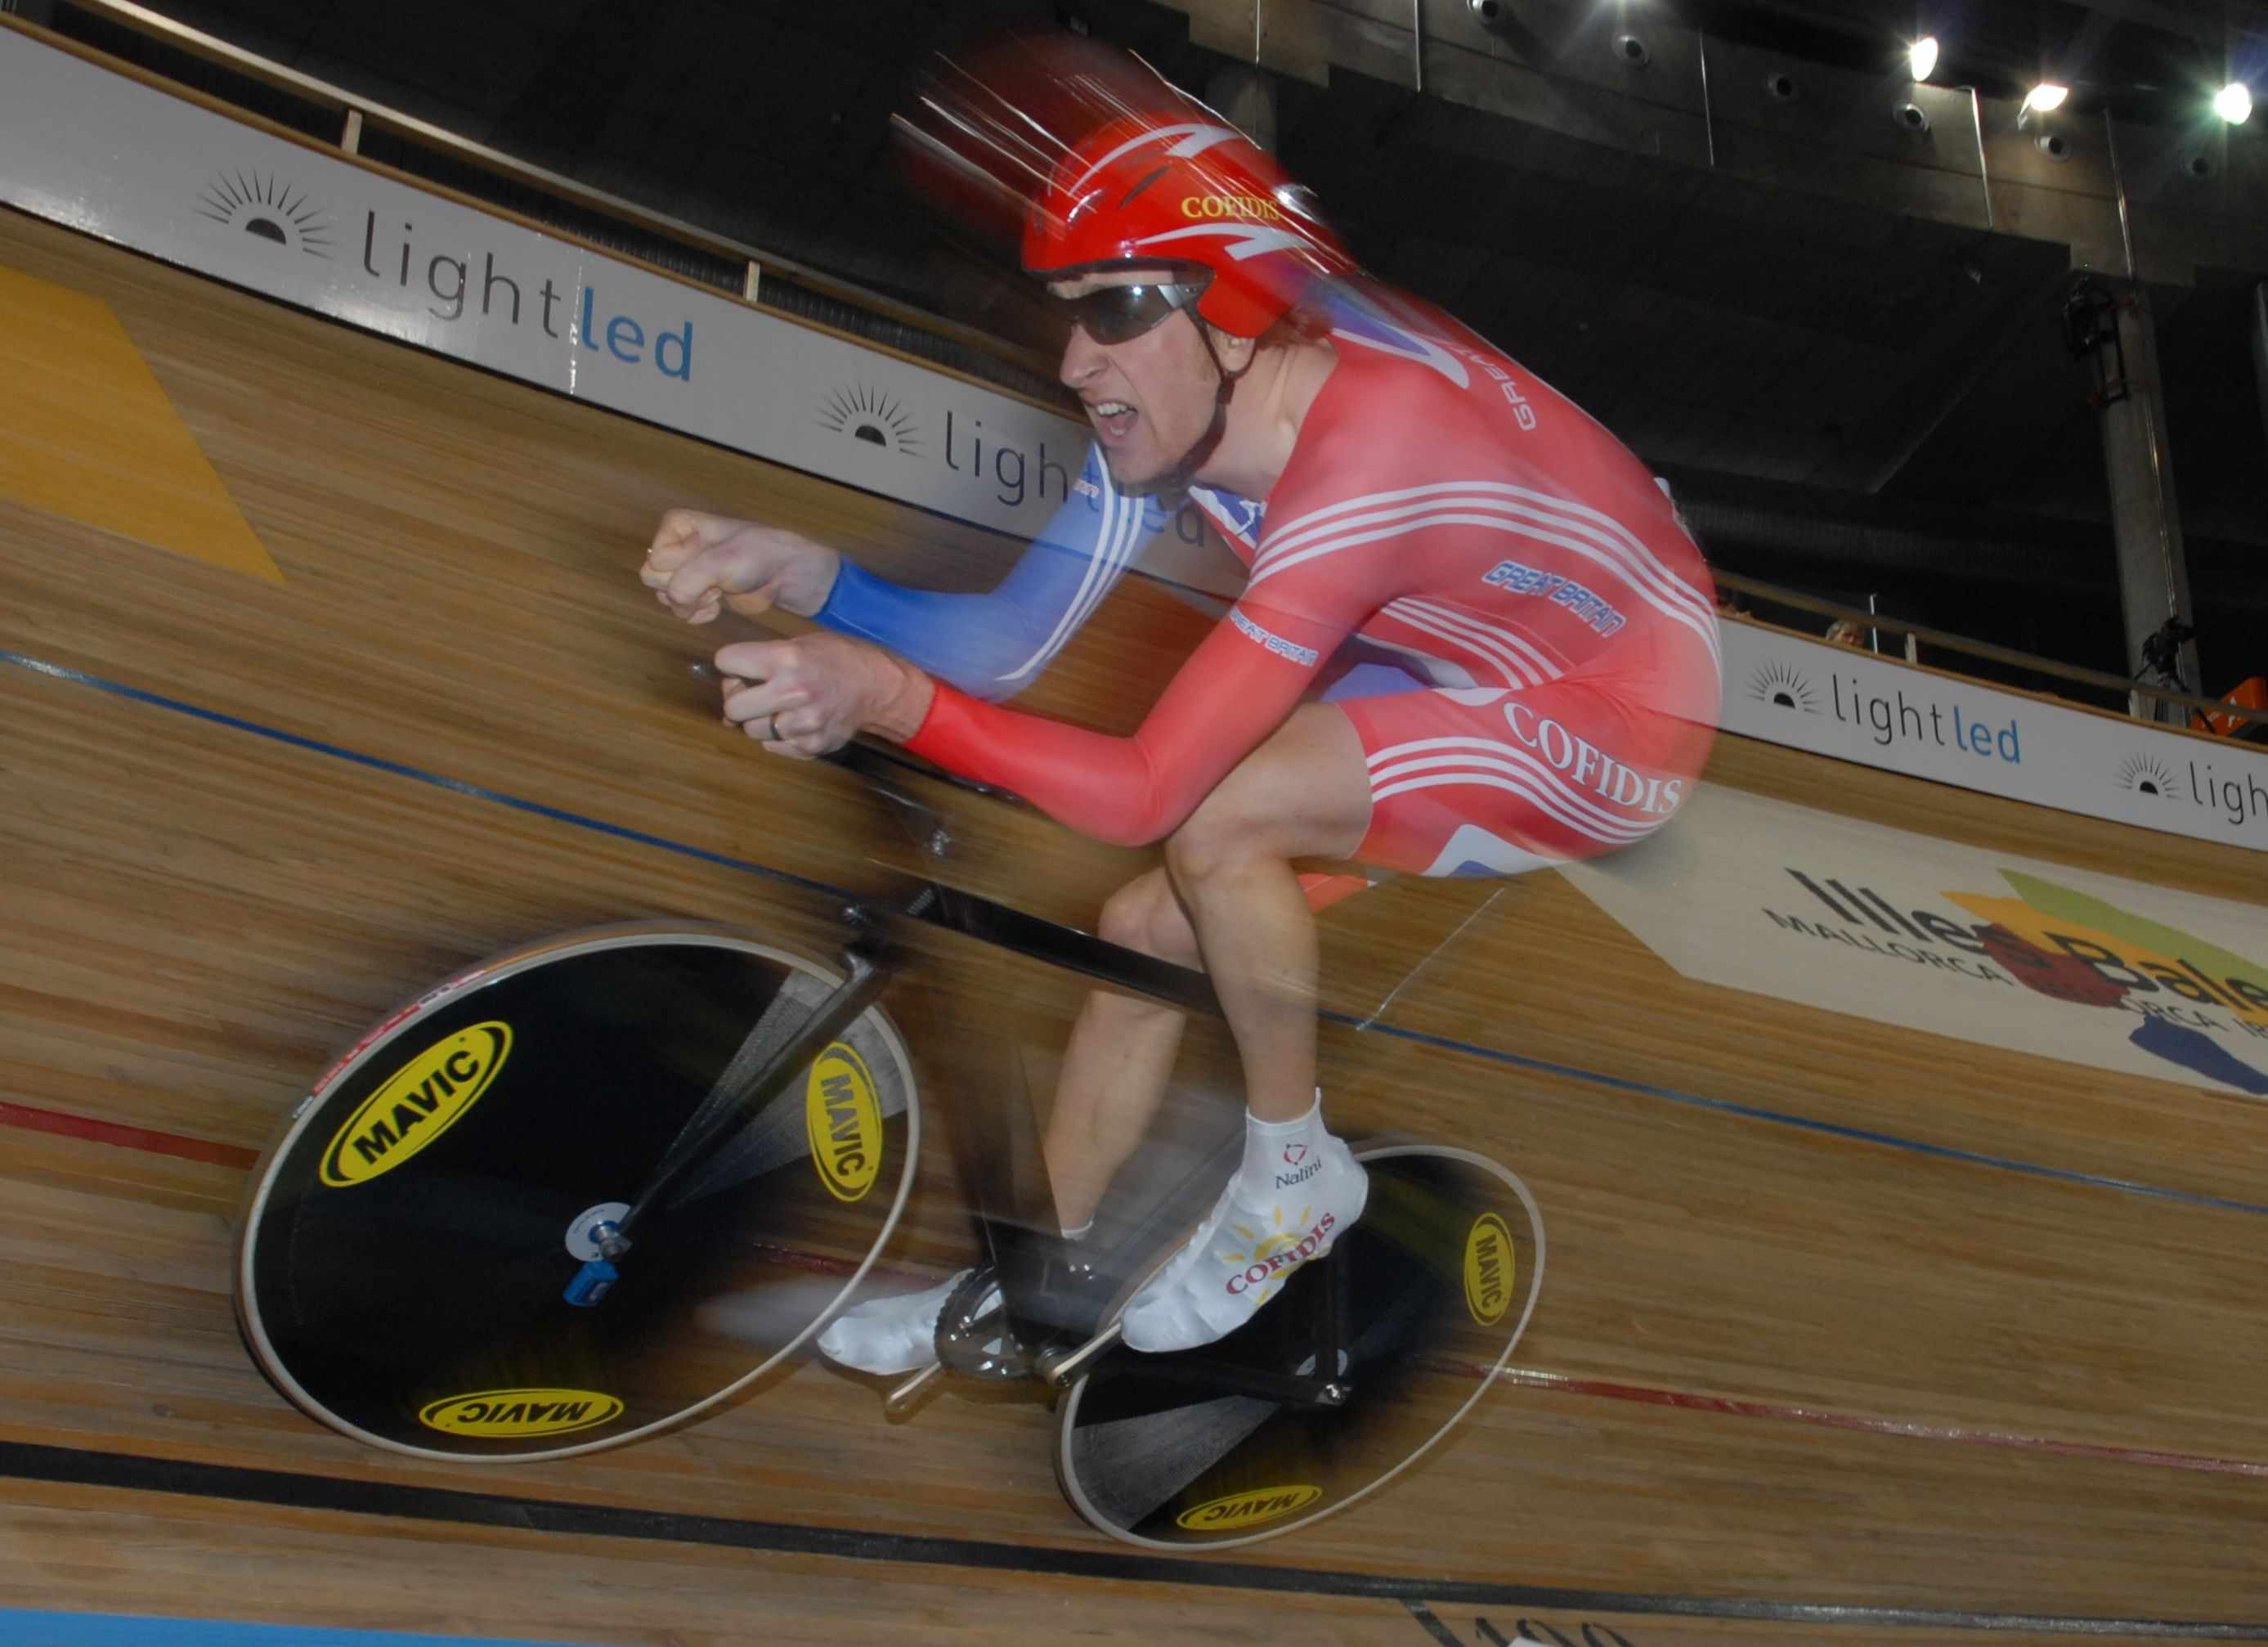 Bradley Wiggins will be hoping to add to his medal tally in Manchester